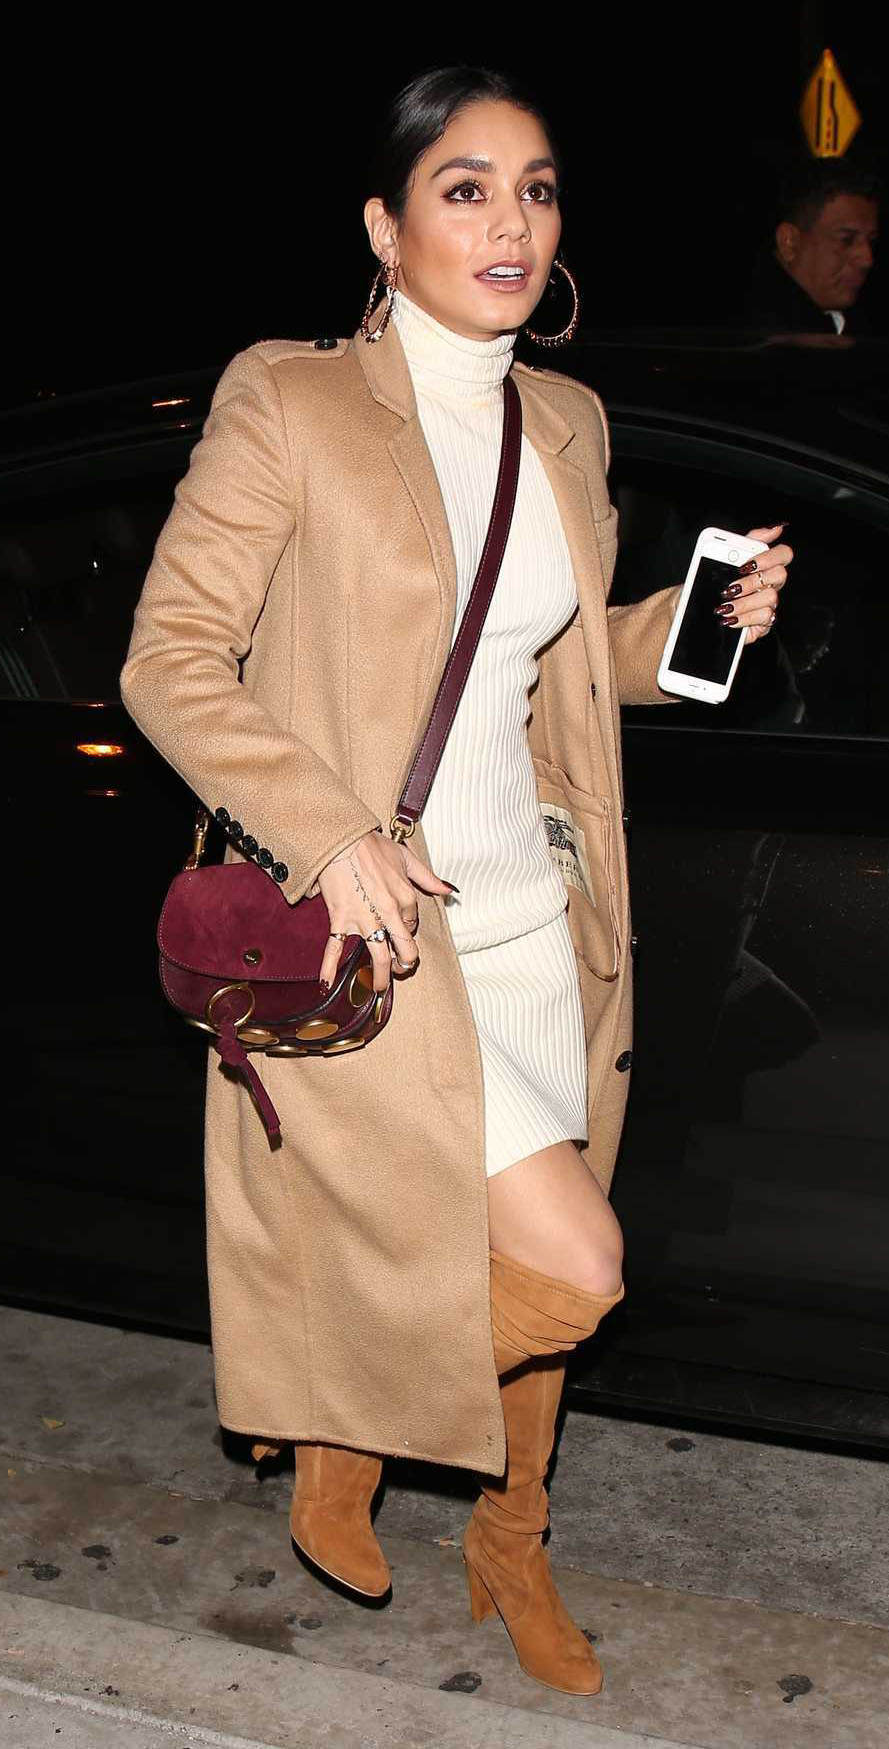 white-dress-sweater-turtleneck-burgundy-bag-hoops-cognac-shoe-boots-camel-jacket-coat-vanessahudgens-fall-winter-brun-dinner.jpg